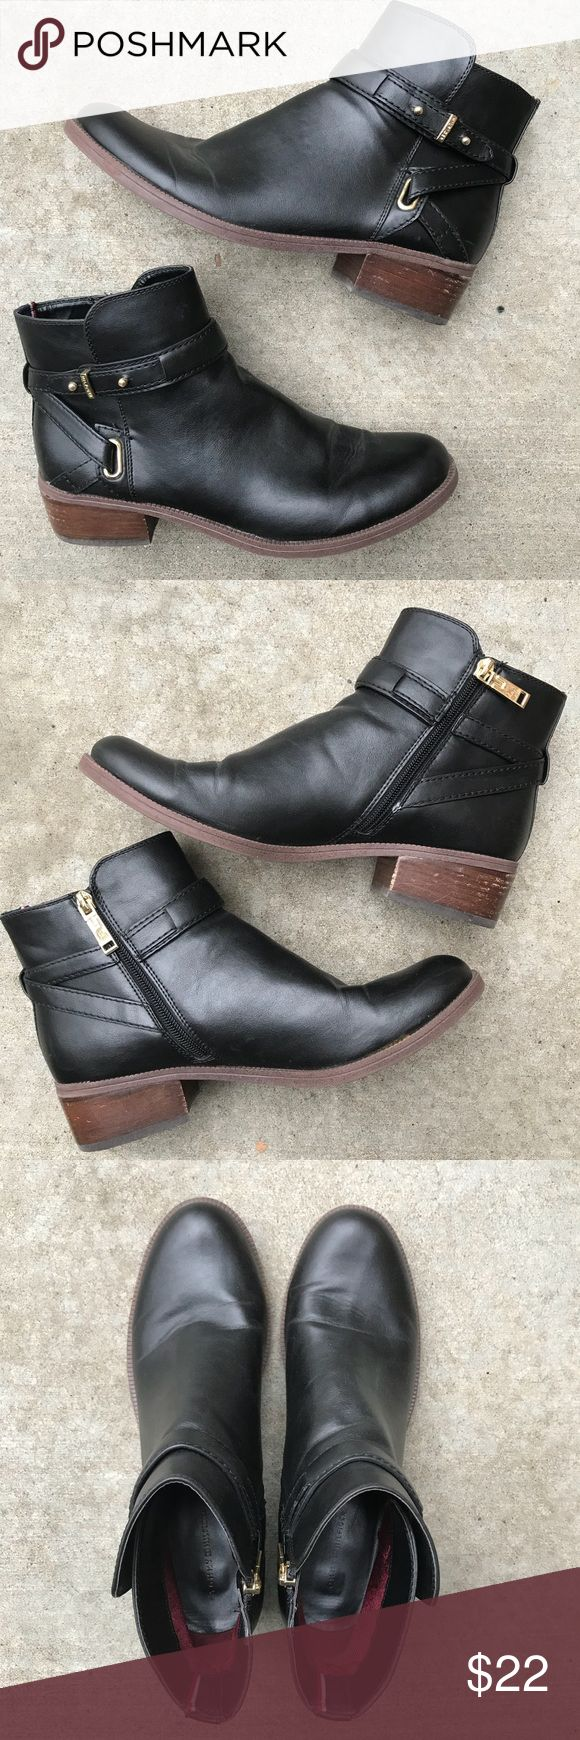 Tommy Hilfiger black ankle boots 9.5 Tommy Hilfiger black ankle boots • size 9.5 • pre-loved but in great condition. They run true to size. Classy and comfortable. Tommy Hilfiger Shoes Ankle Boots & Booties